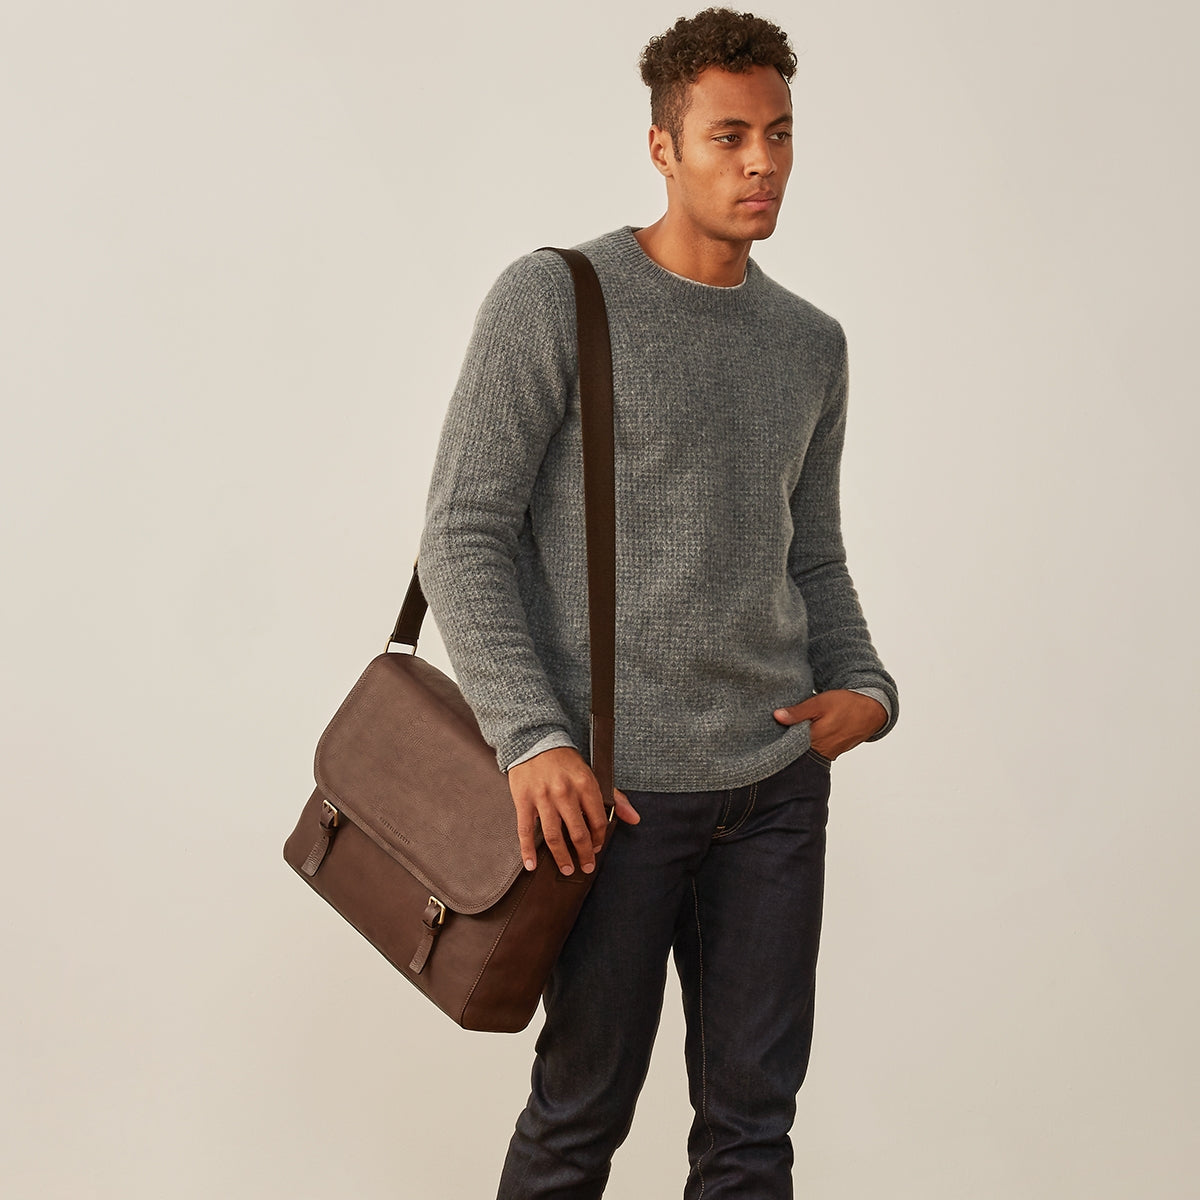 Image 7 of the 'Ravenna' Brown Leather Classic Men's Satchel Bag